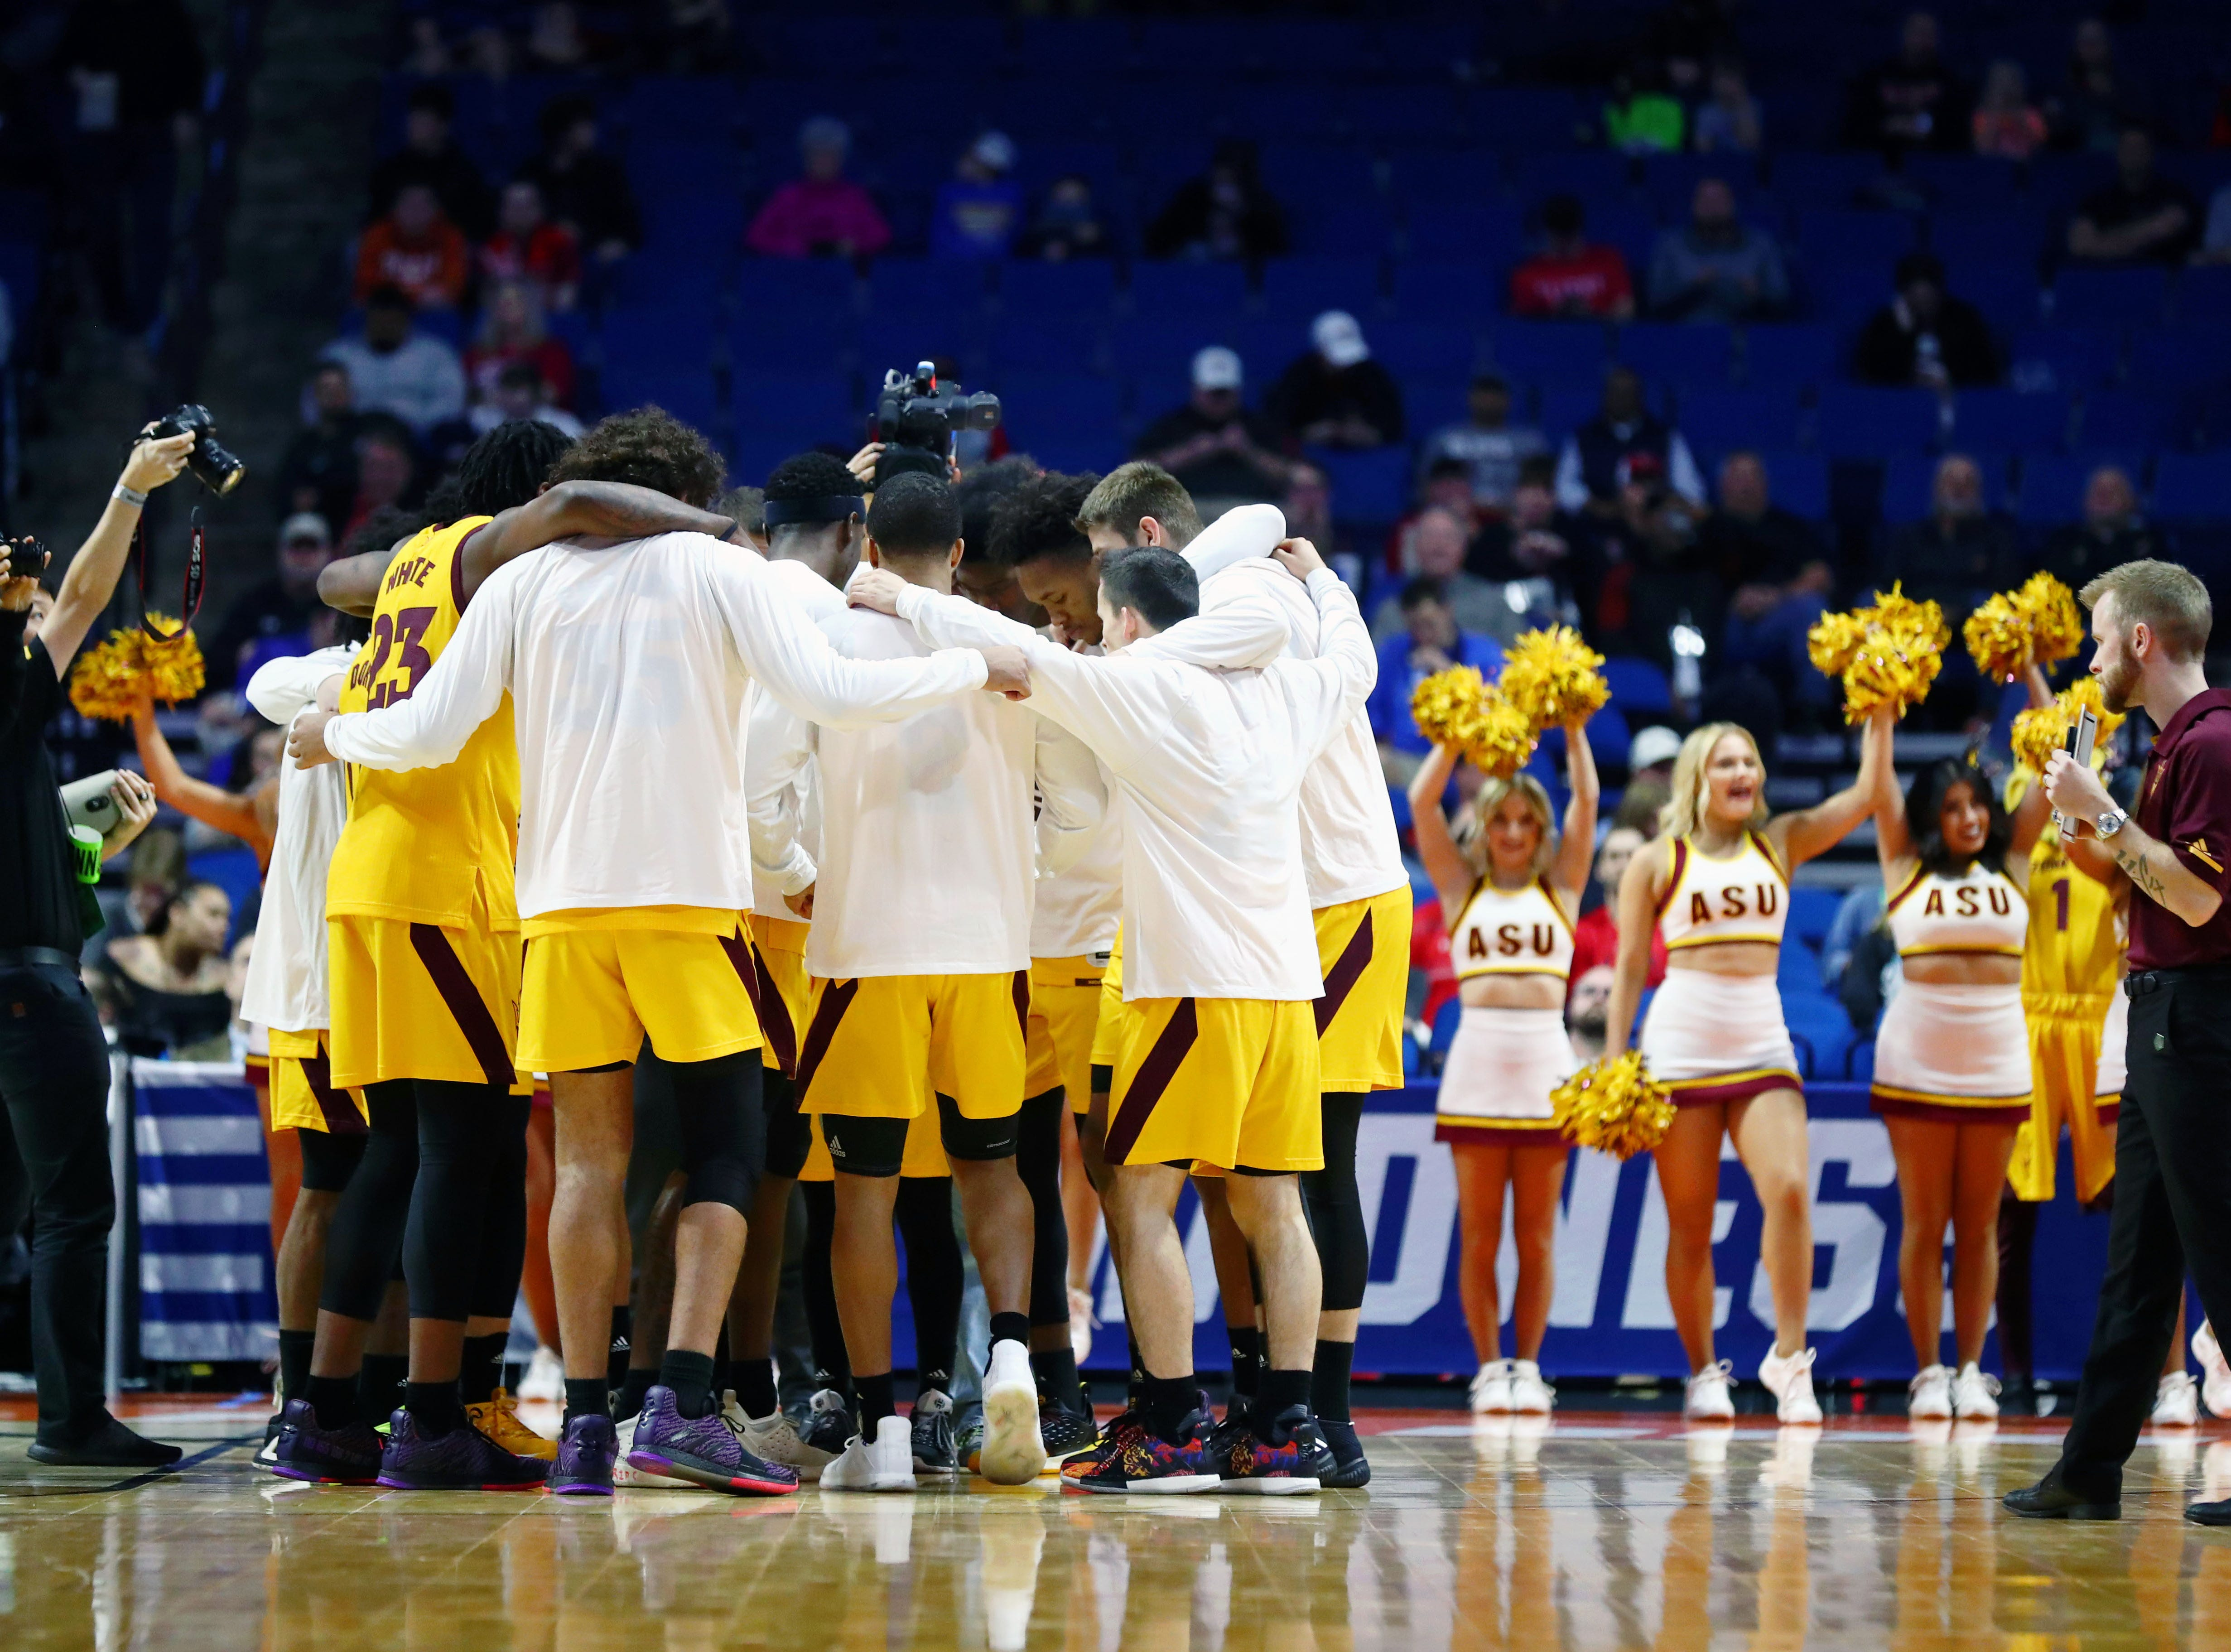 Mar 22, 2019; Tulsa, OK, USA; The Arizona State Sun Devils huddle before the start of their game against the Buffalo Bulls in the first round of the 2019 NCAA Tournament at BOK Center. Mandatory Credit: Mark J. Rebilas-USA TODAY Sports